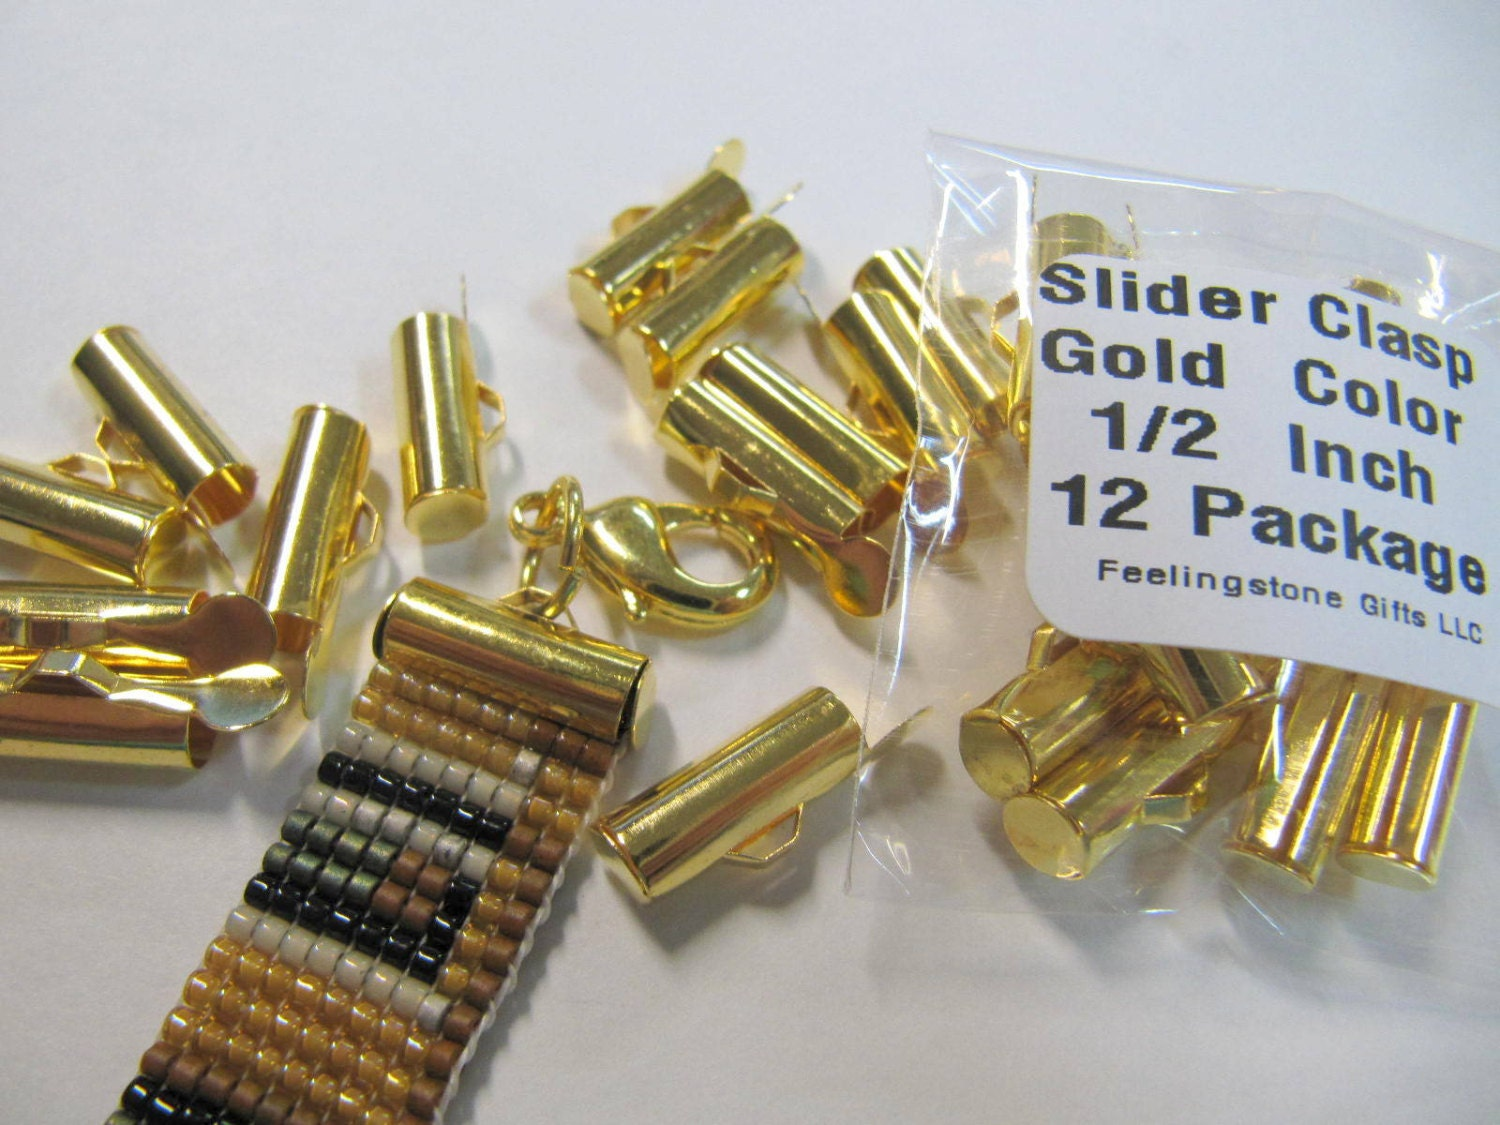 End Caps Slider Clasps, 1/2 Inch, Gold Color, Loom Bead Patterns, Loom Findings, 12 Pack, Look Is Clean and Neat